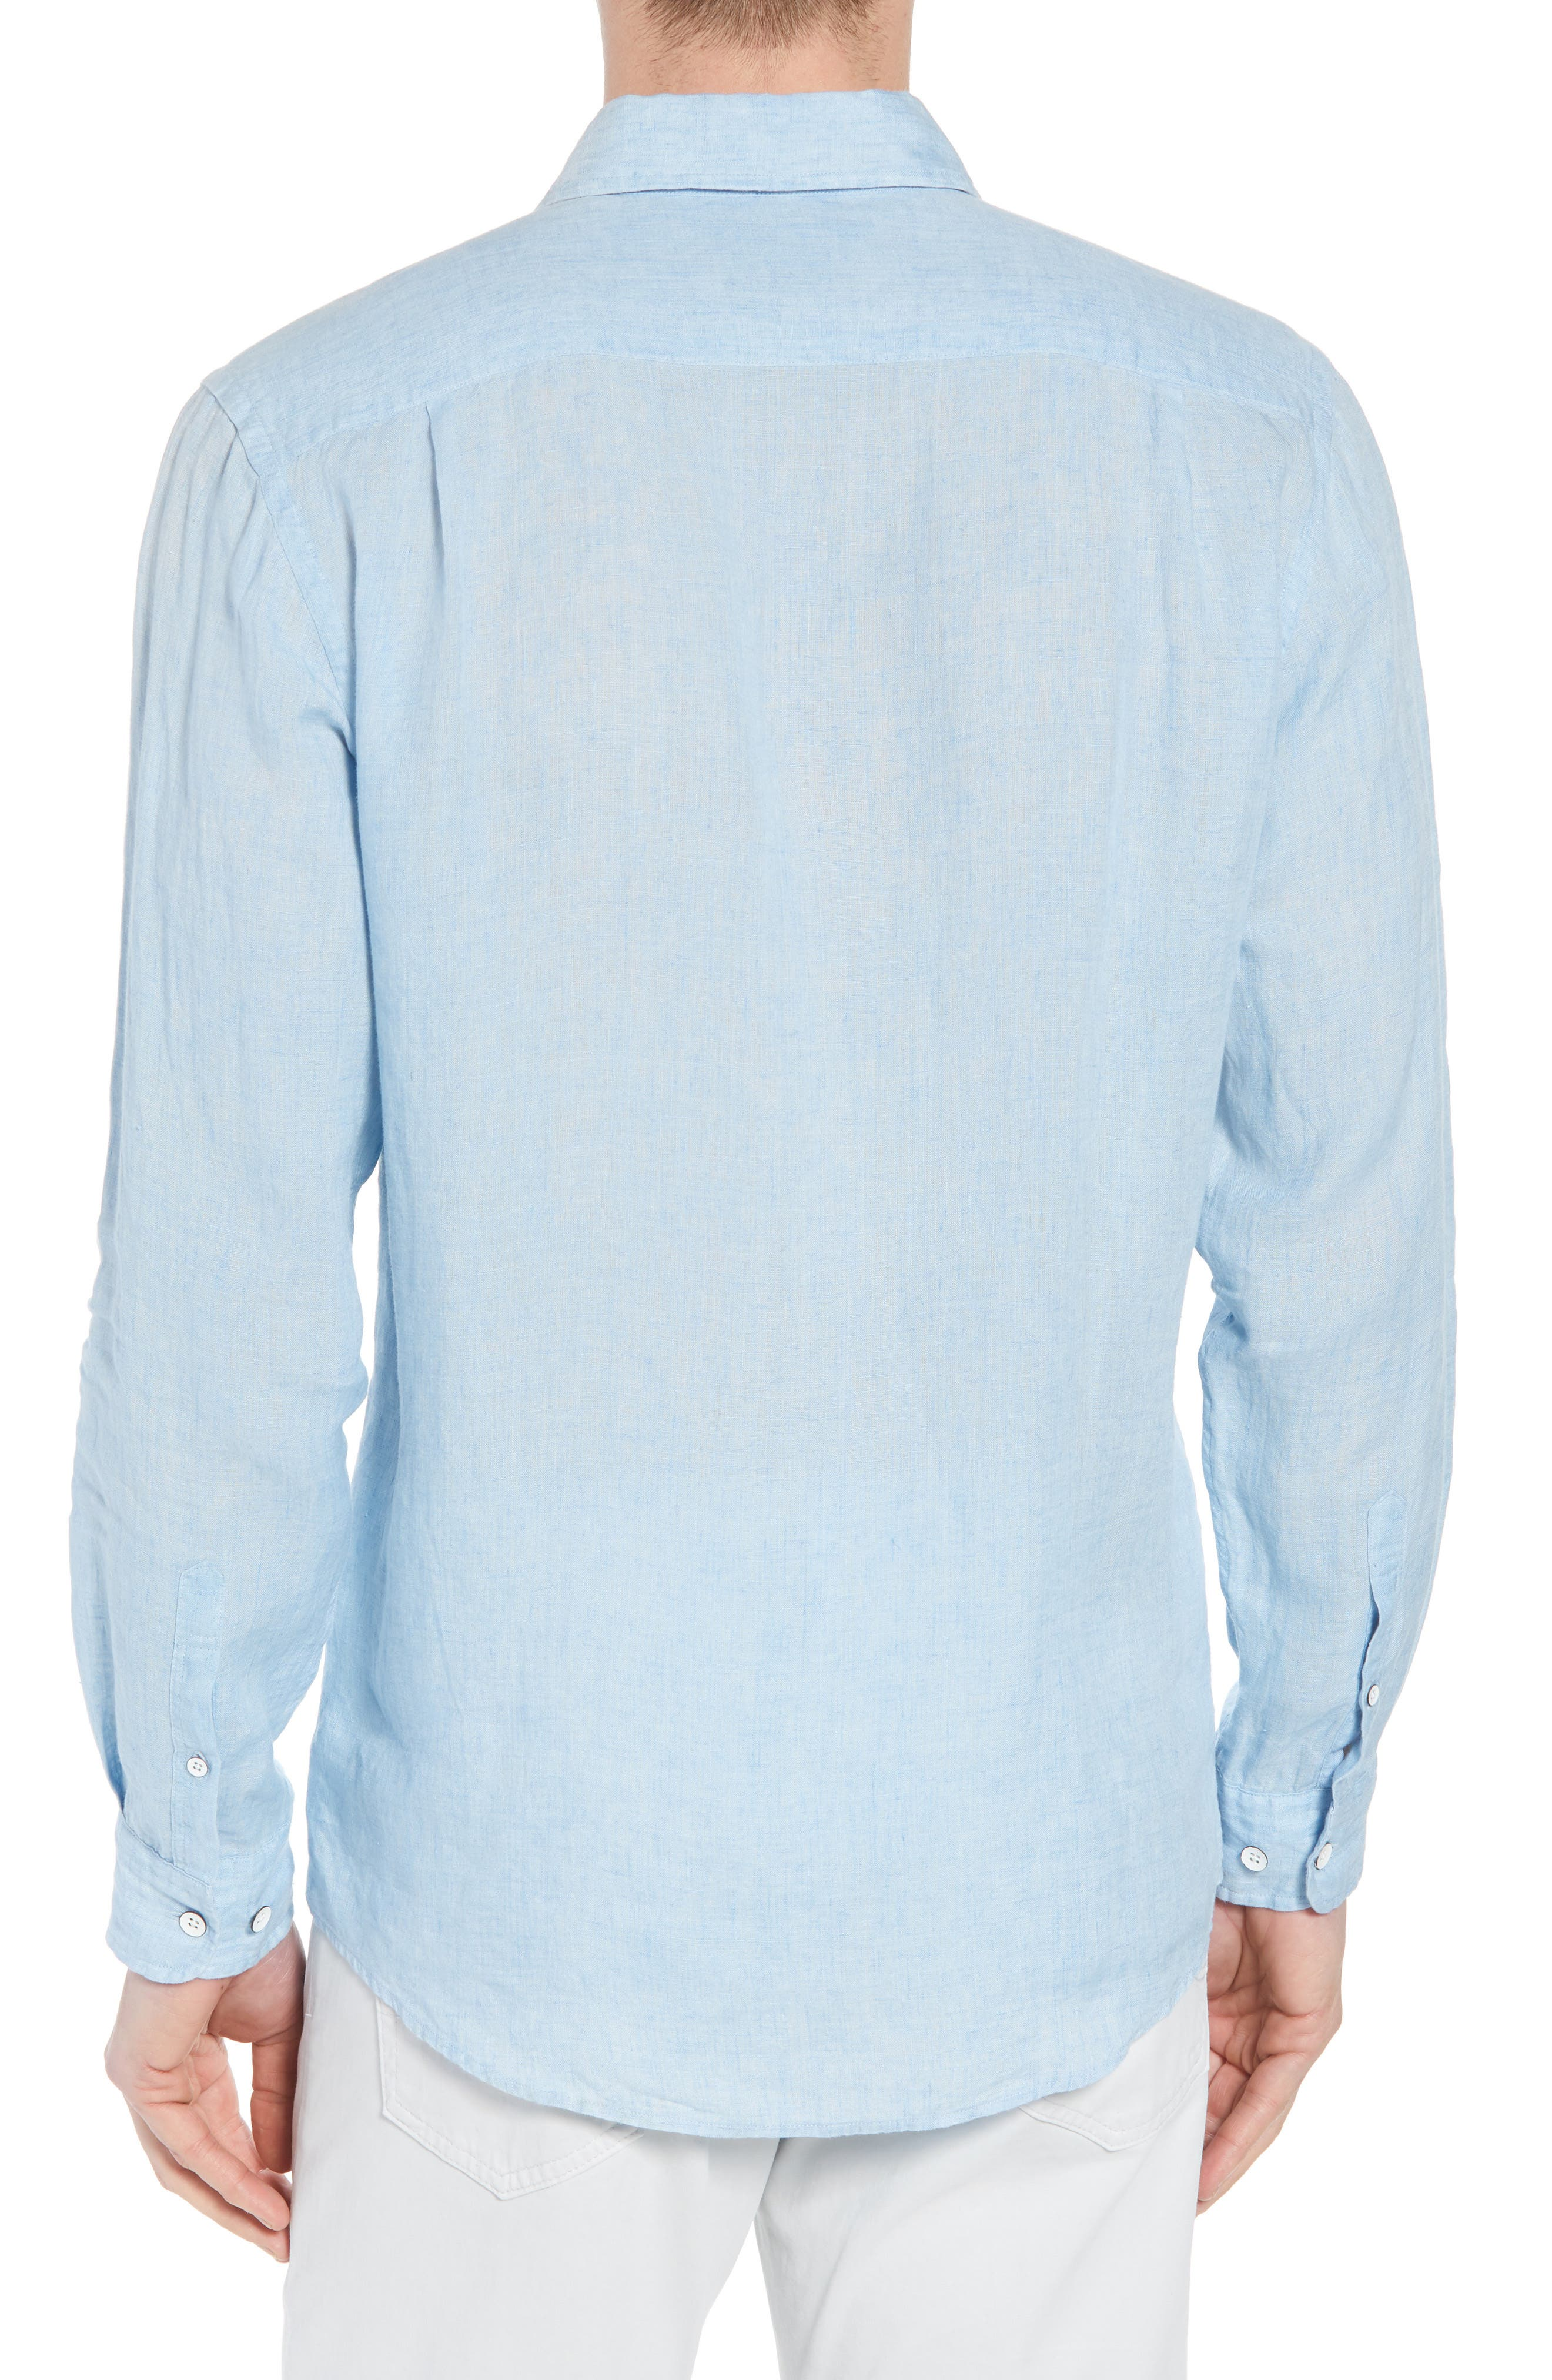 Harris Bay Regular Fit Linen Sport Shirt,                             Alternate thumbnail 2, color,                             STONEWASH